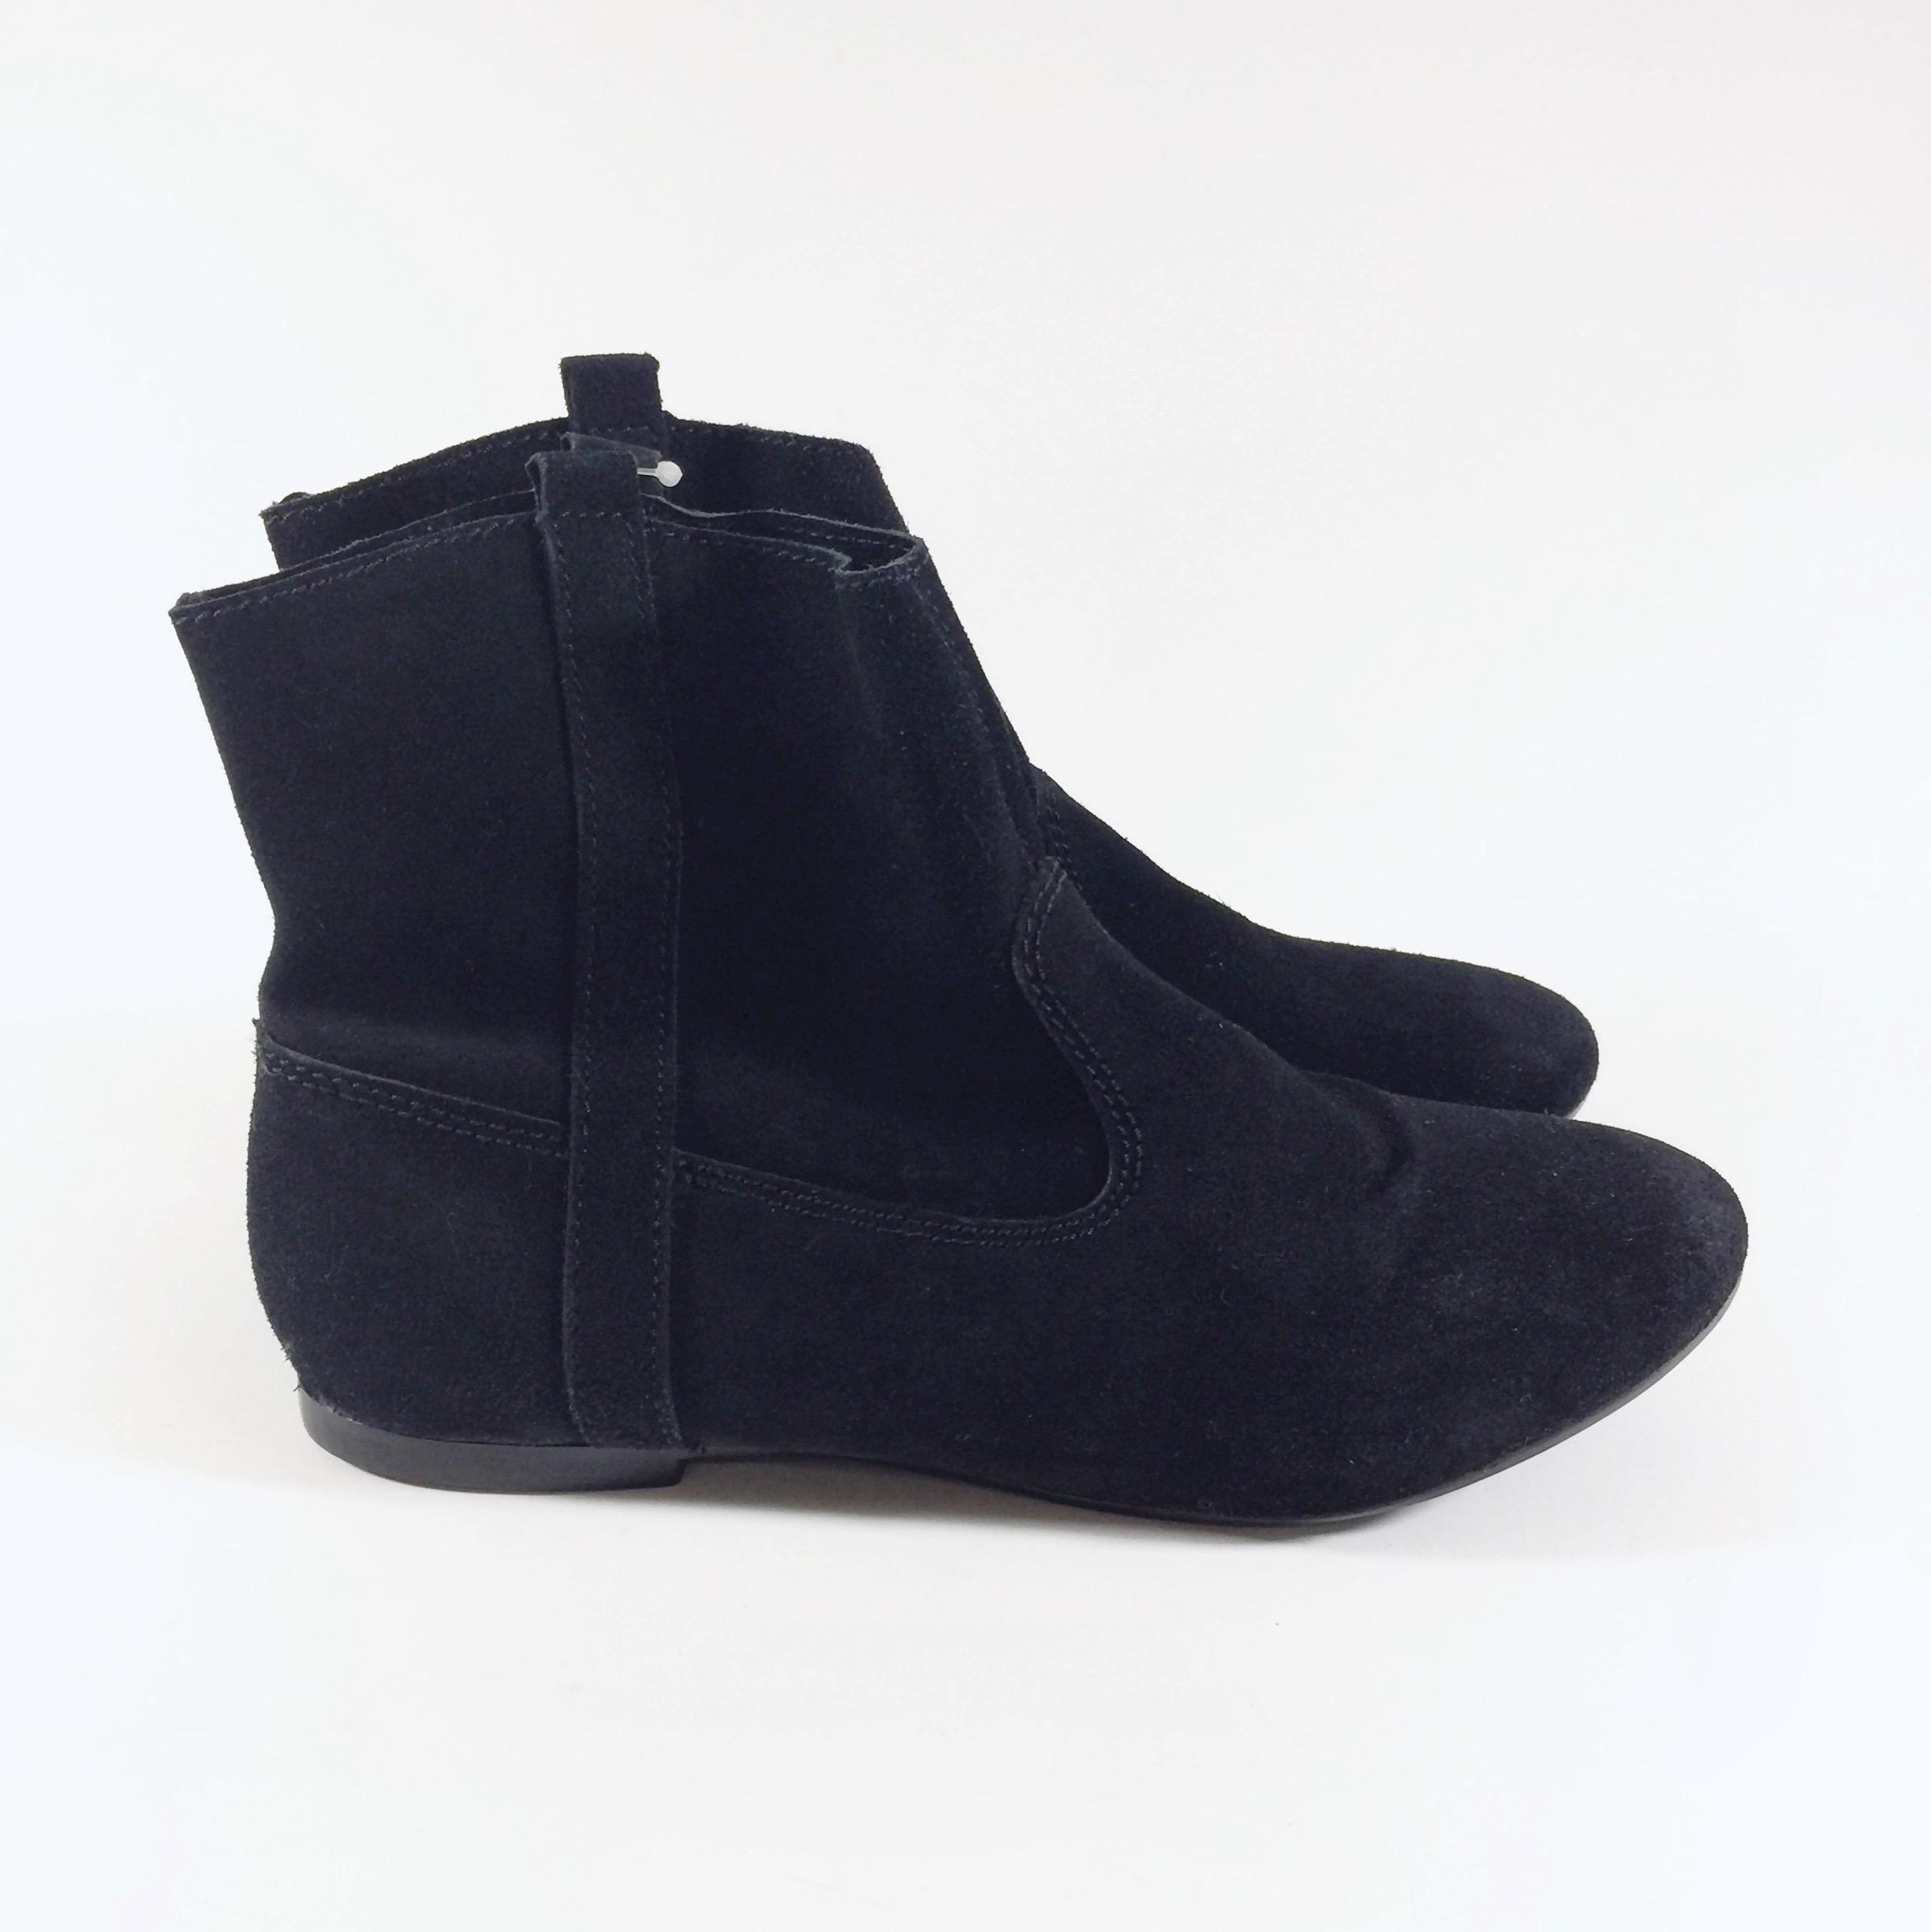 zara nwt suede ankle black boots boots booties on sale